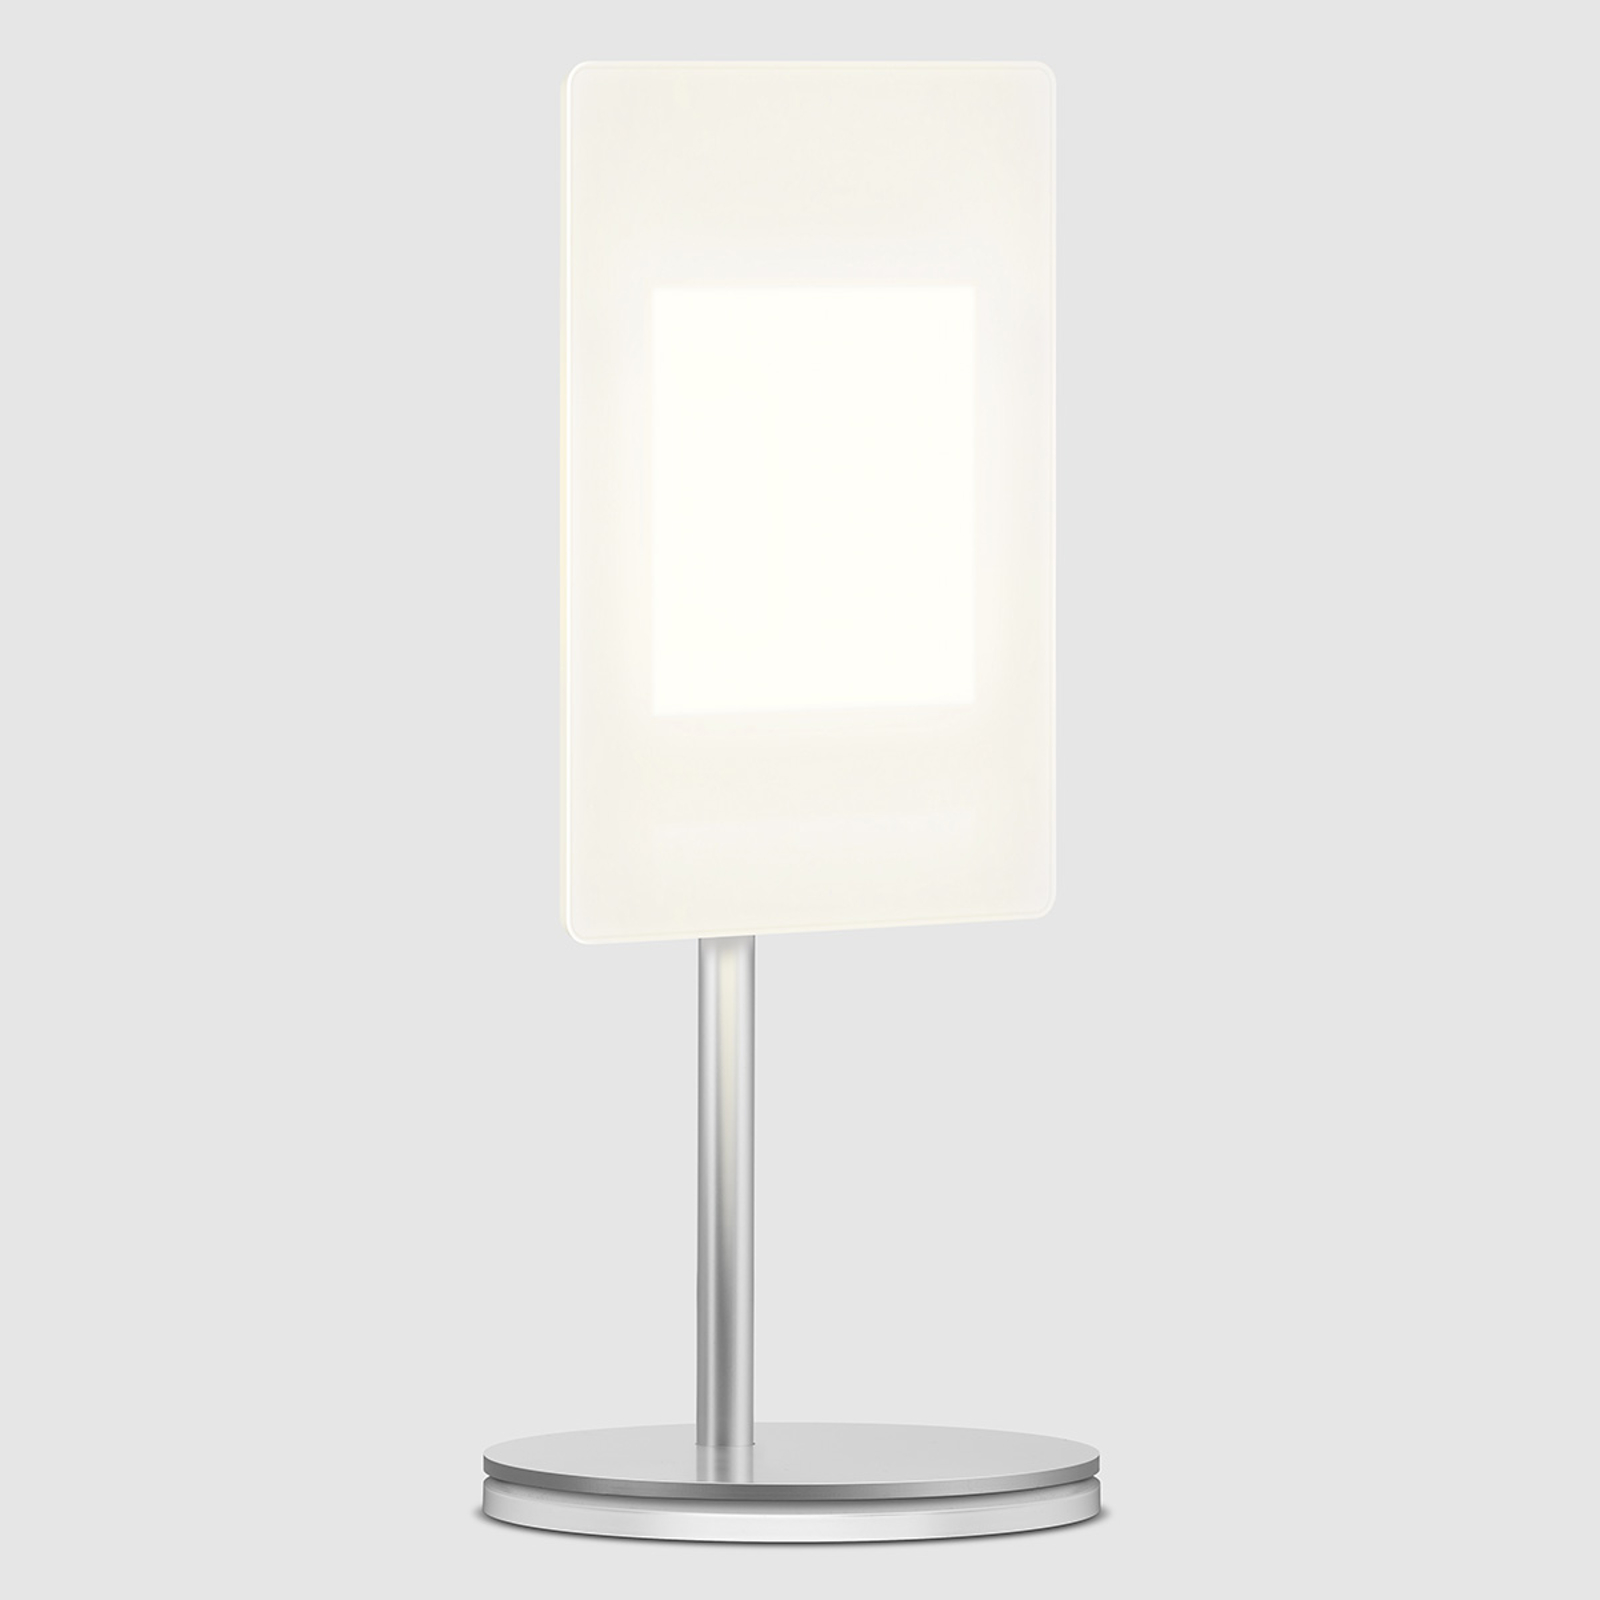 OLED-bordlampe OMLED One t1 med OLED, hvit